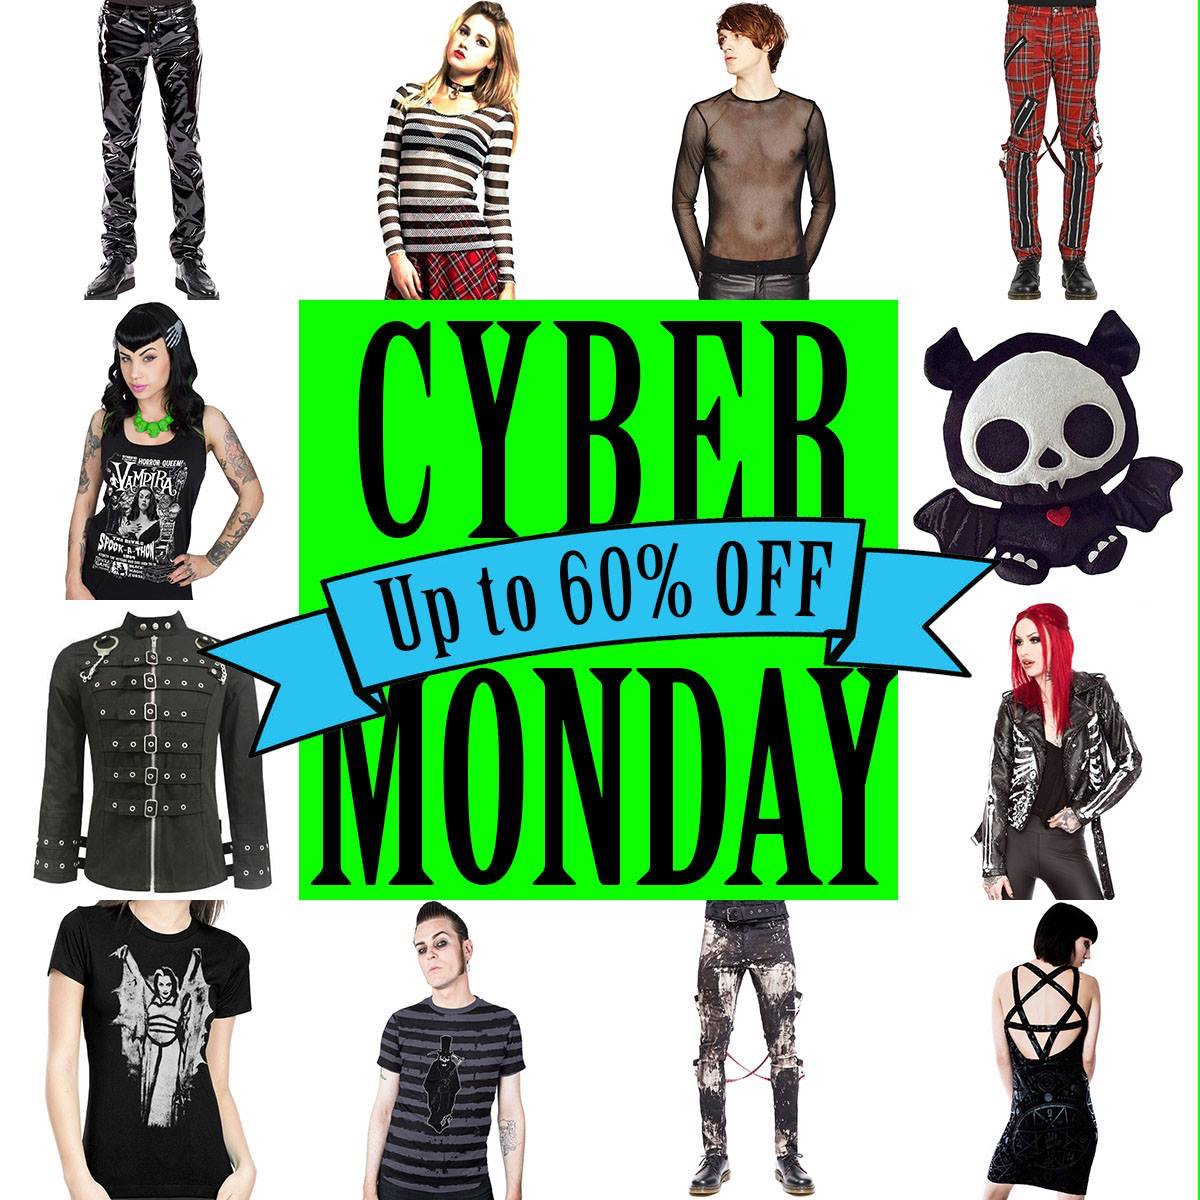 Over 400 Best Ing Items 30 60 Off Including All From Tripp Nyc Killstar Y Threads More Goth Trip Vampirefreaks